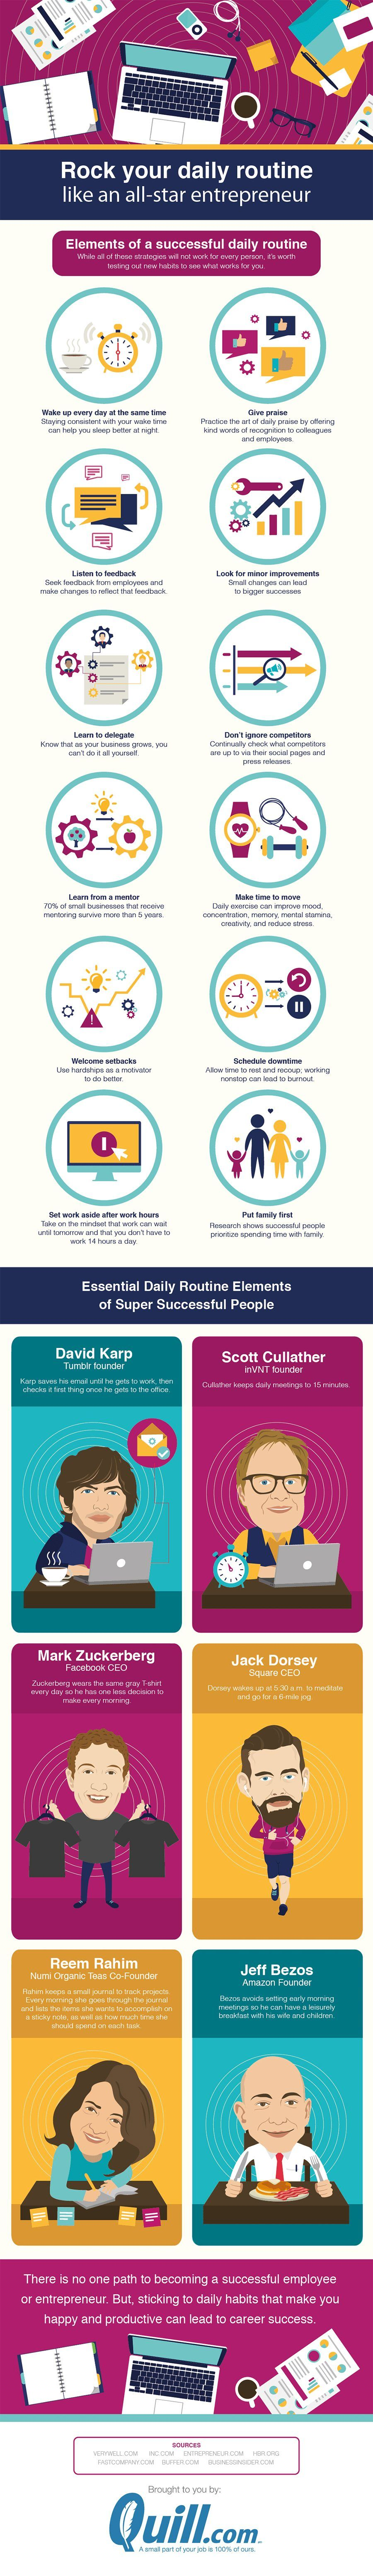 How To Rock Your Daily Routine Like An All Star Entrepreneur